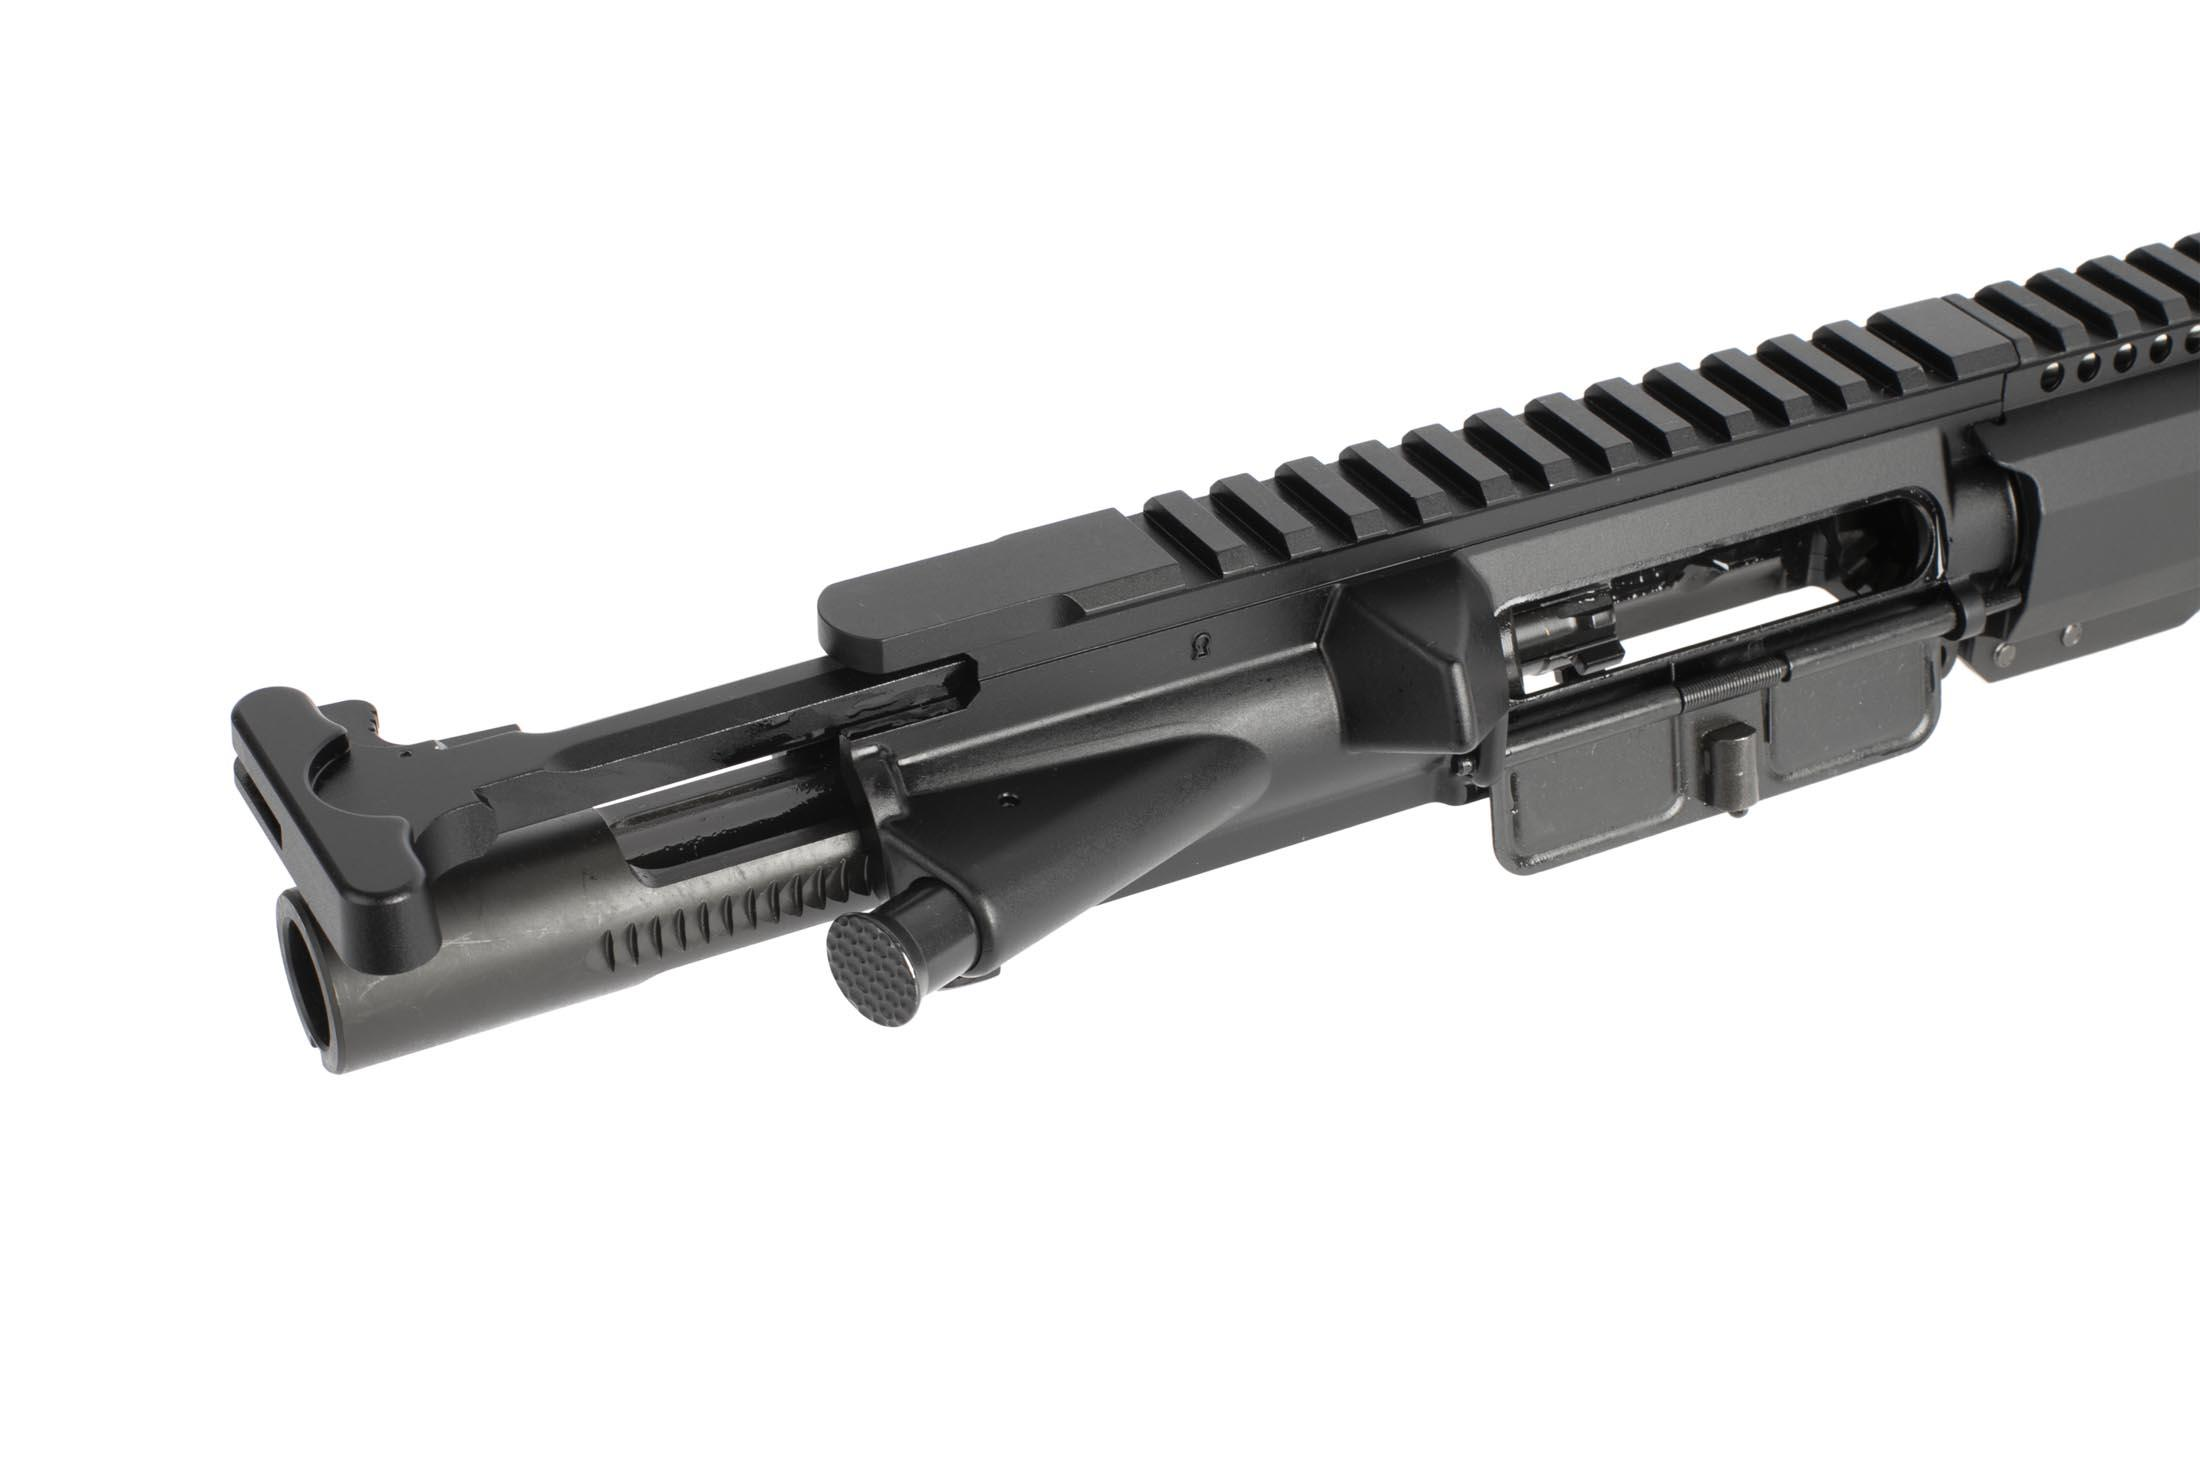 Radical's complet upper half with 16in SOCOM 5.56 barrel and 15in M-LOK FCR Gen 3 rail has an M16 bolt carrier group for reliability